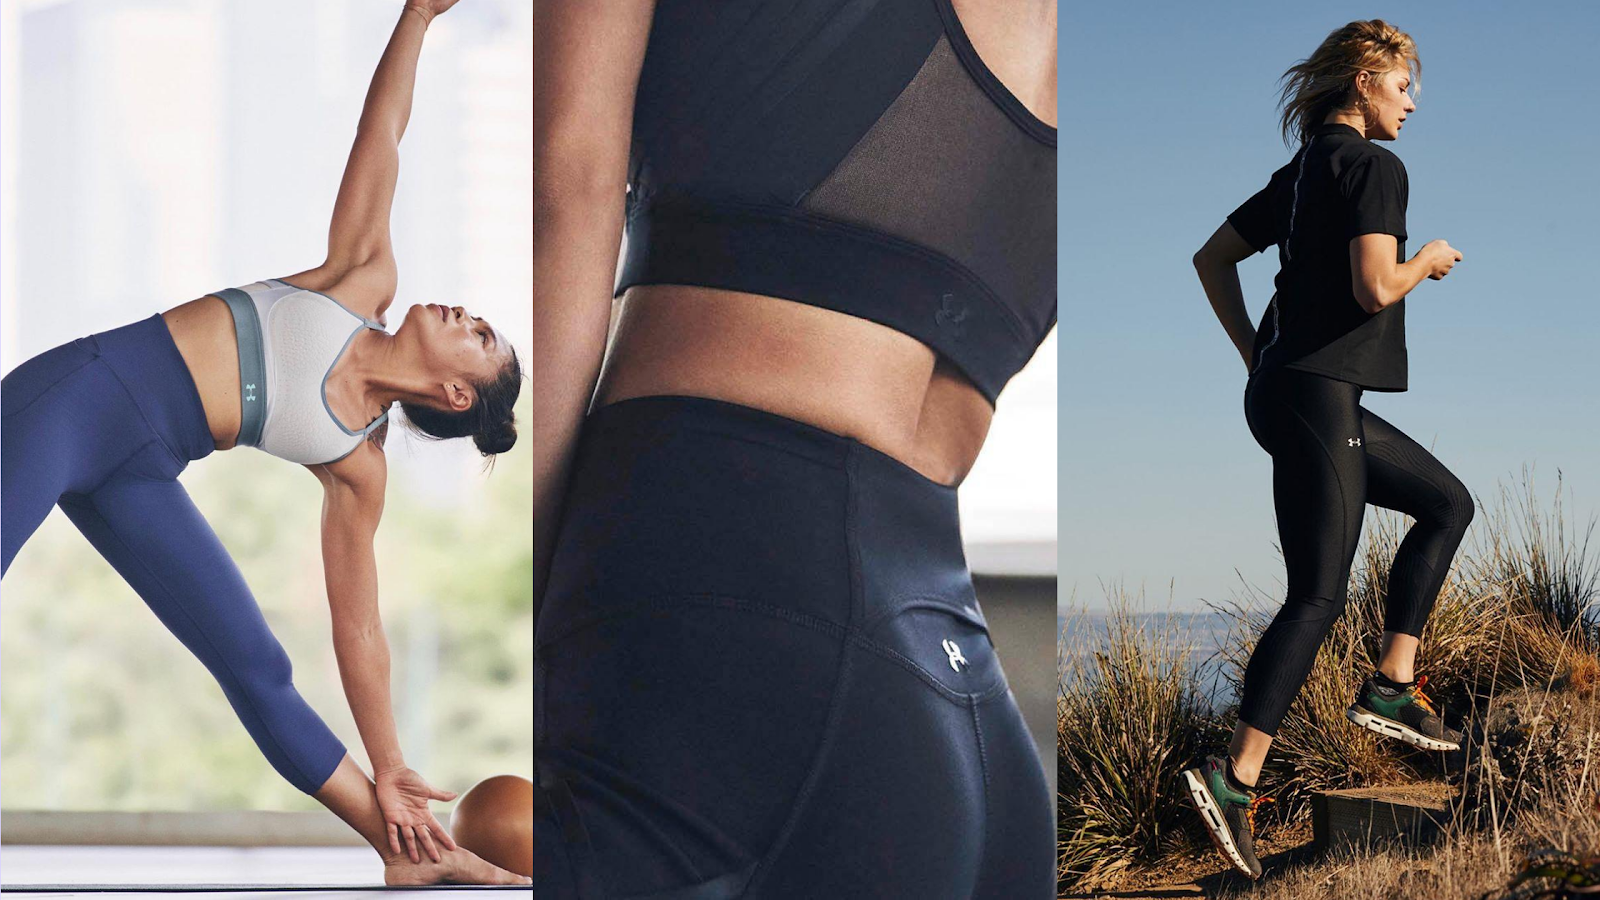 Shop hot weather fashion from Under Armor